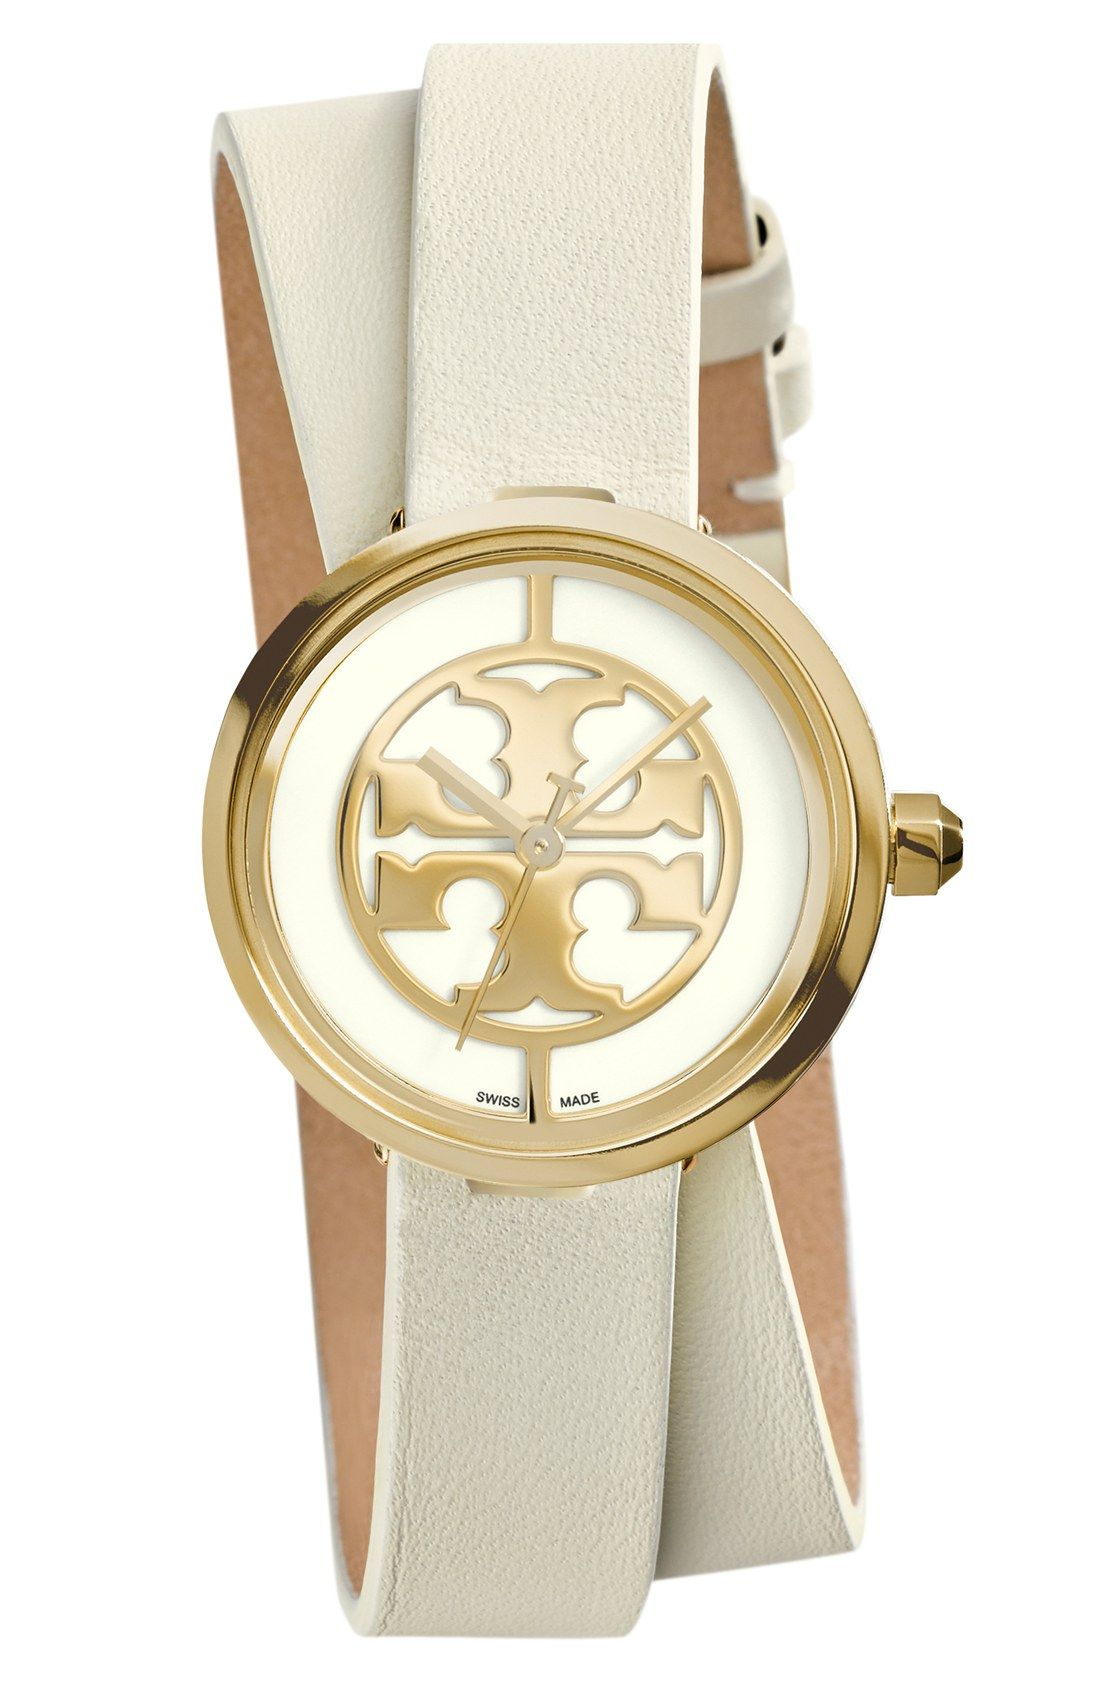 3c3227339 Loving this Tory Burch double wrap leather watch for stacking. | Top ...